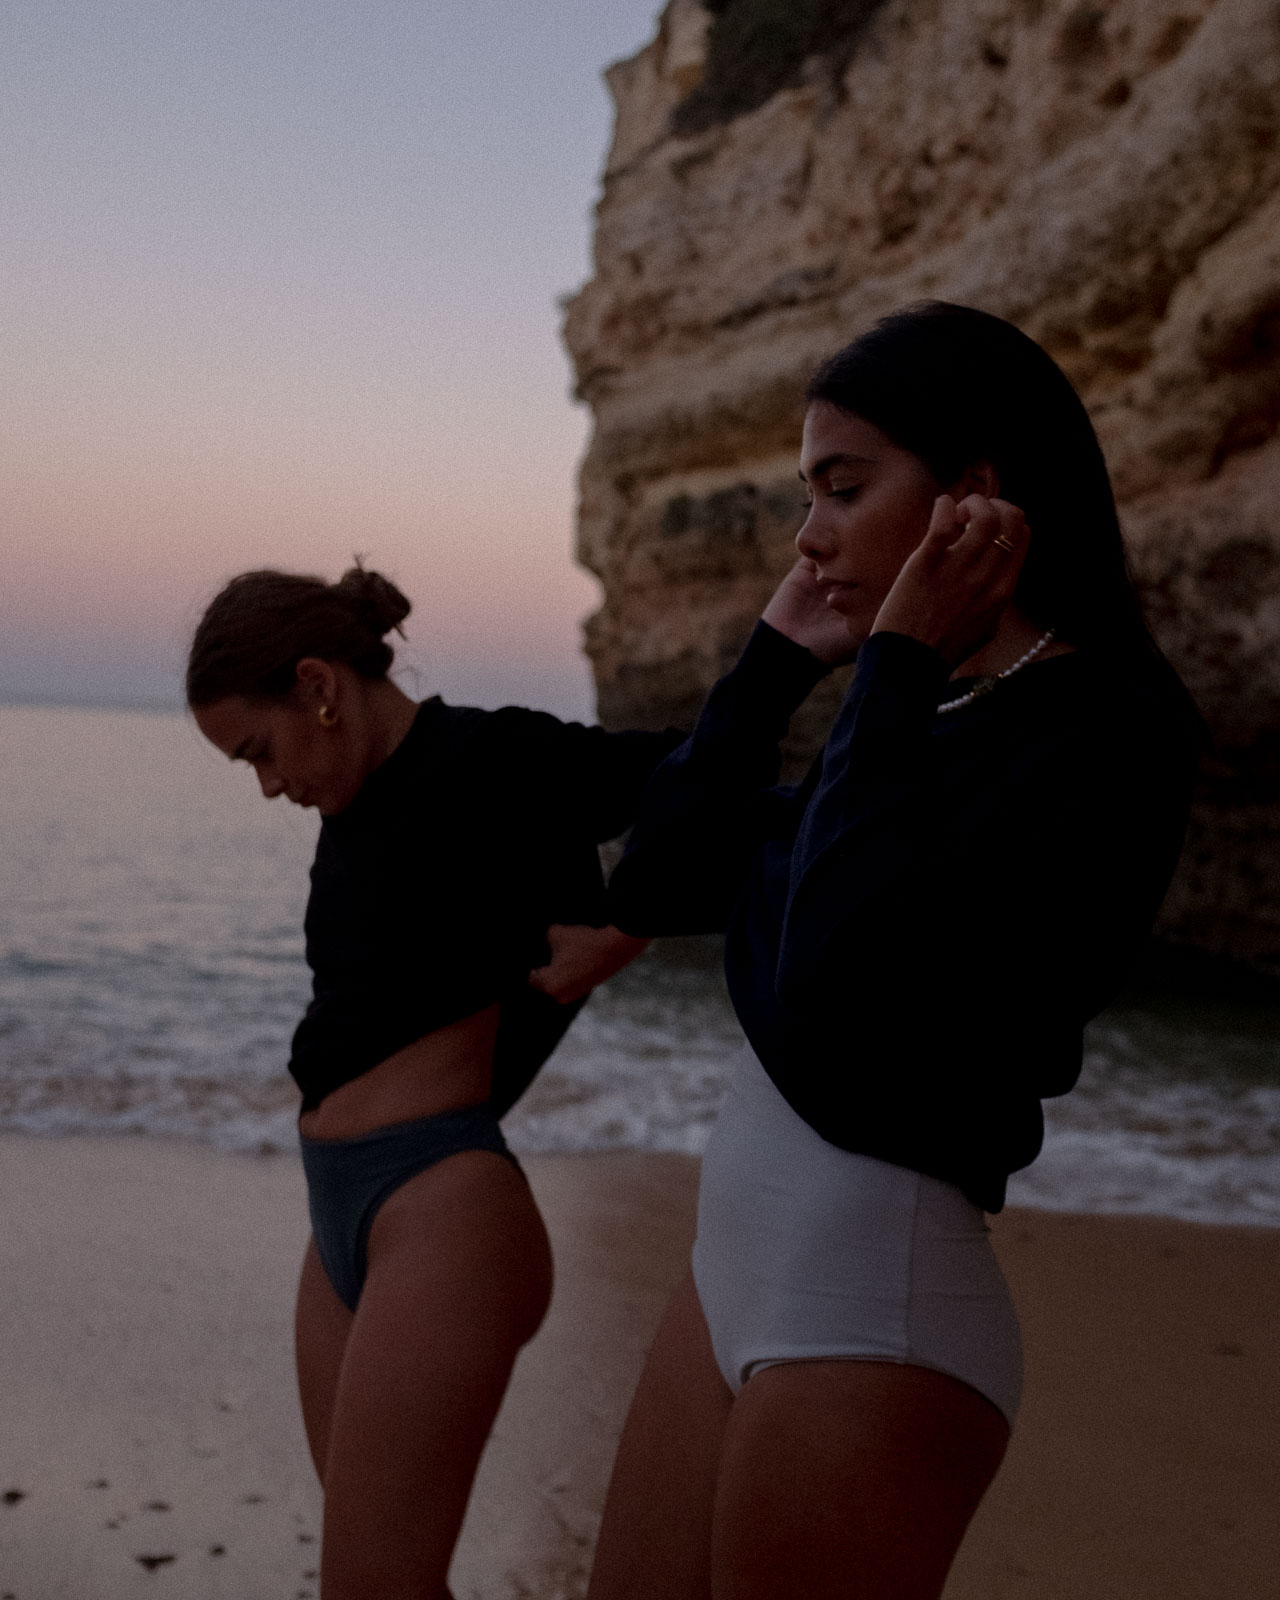 storm wears seidensticker sweater combined with blek swimsuits and desiree kastull wears black sweater shot by Marius Knieling in Portugal